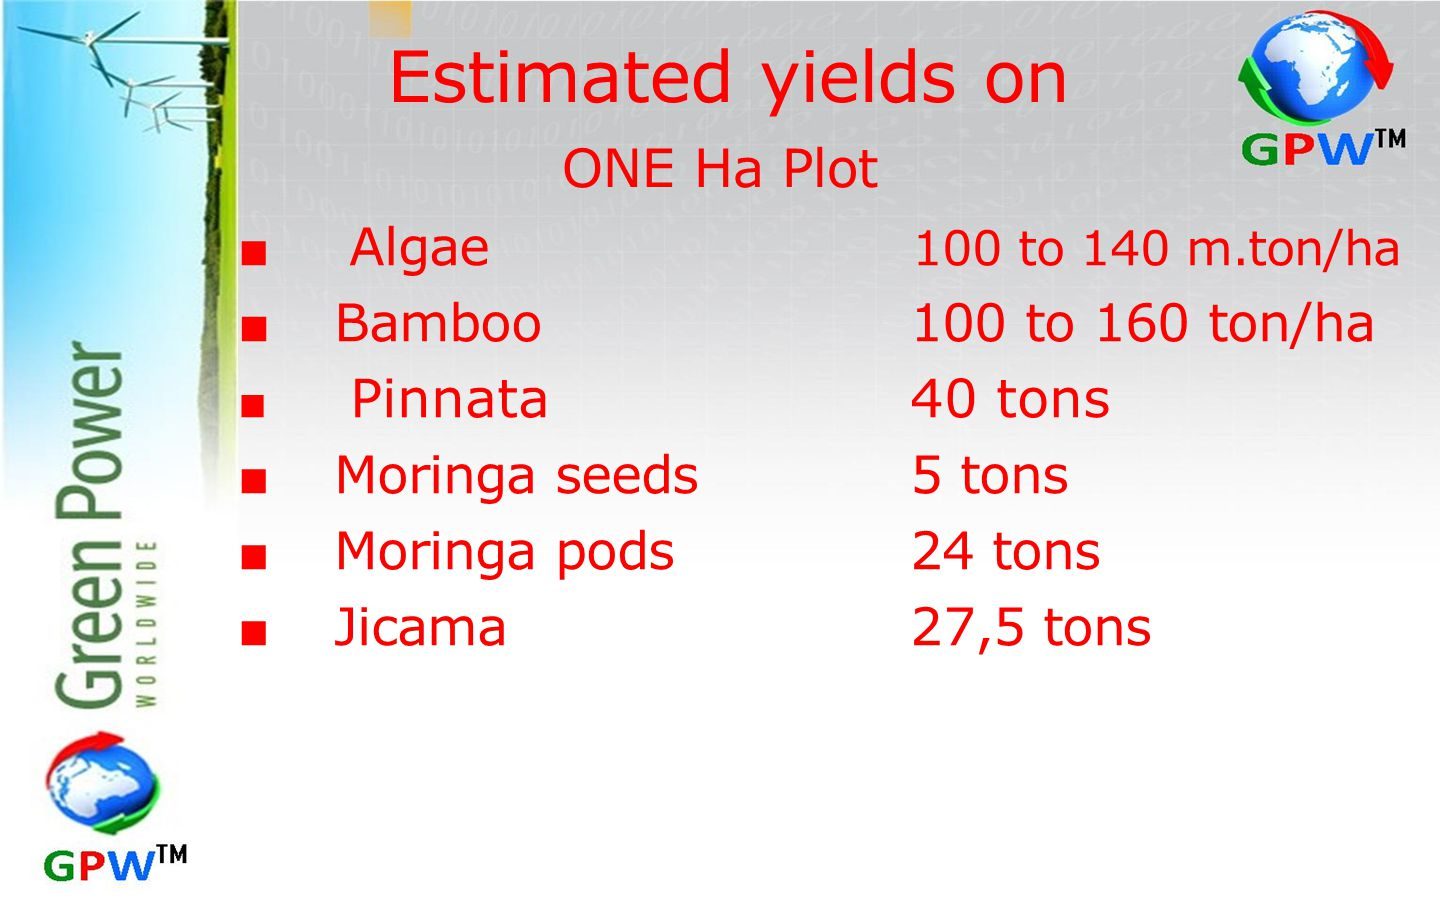 Estimated yields on ONE Ha Plot ■ Bamboo 100 to 160 ton/ha